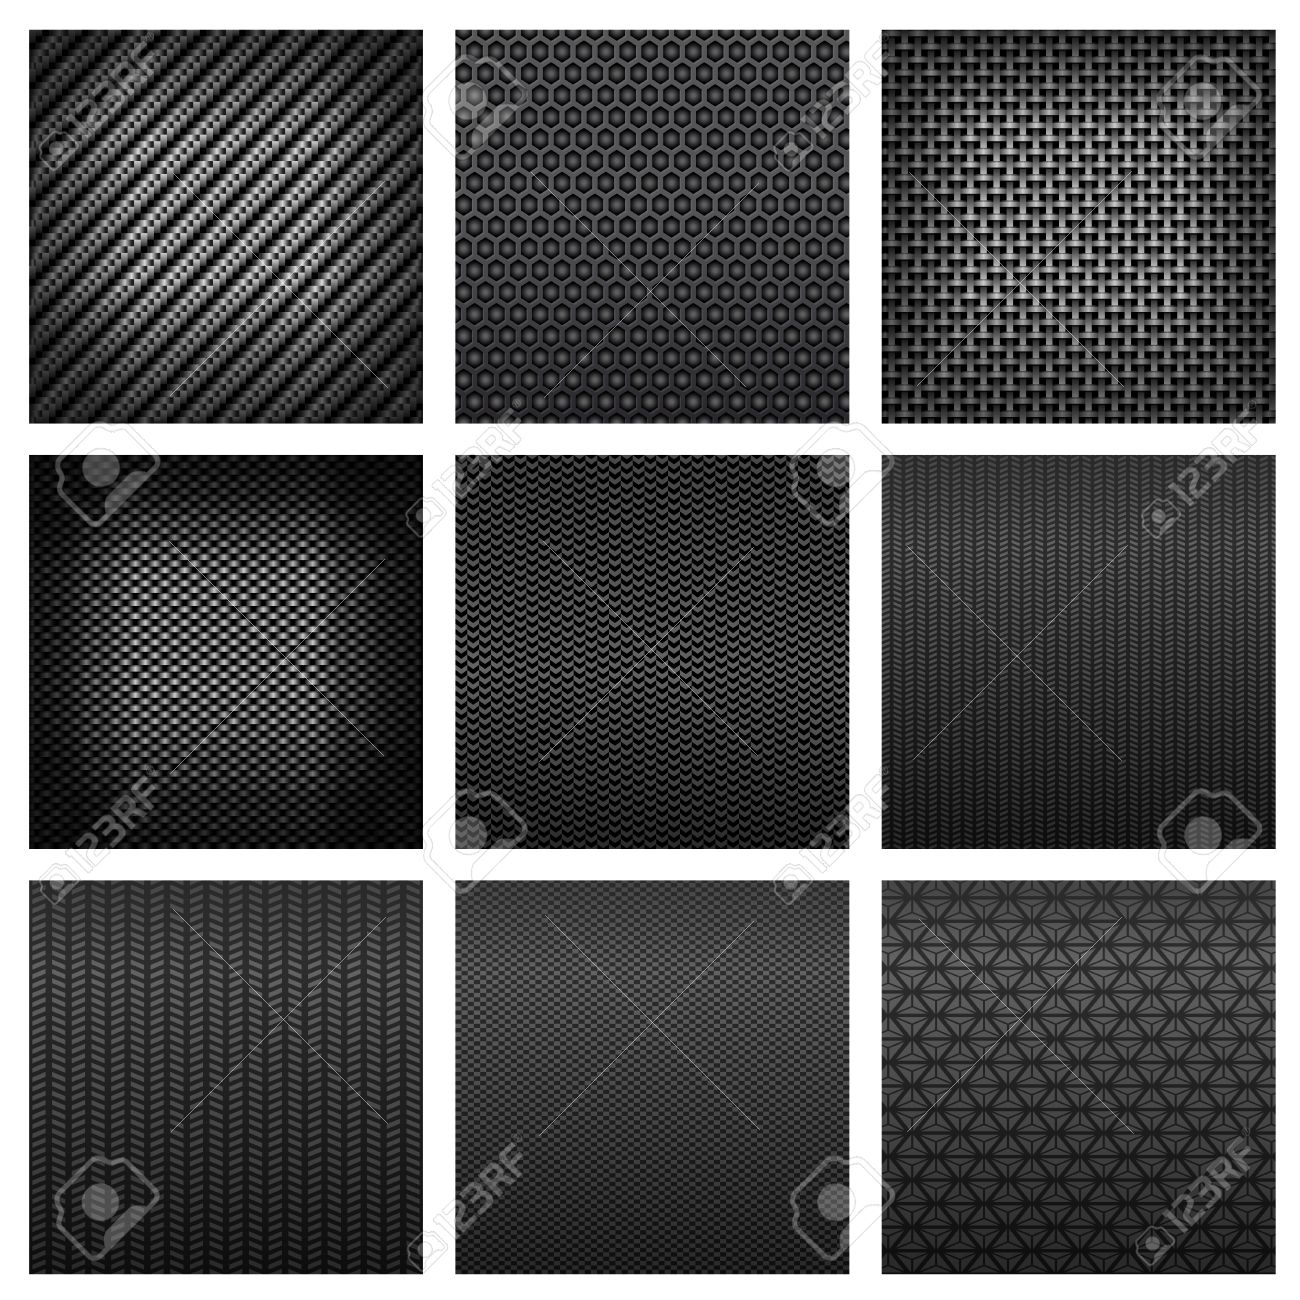 Carbon And Fiber Seamless Patterns With Dark Gray Fabric Textures